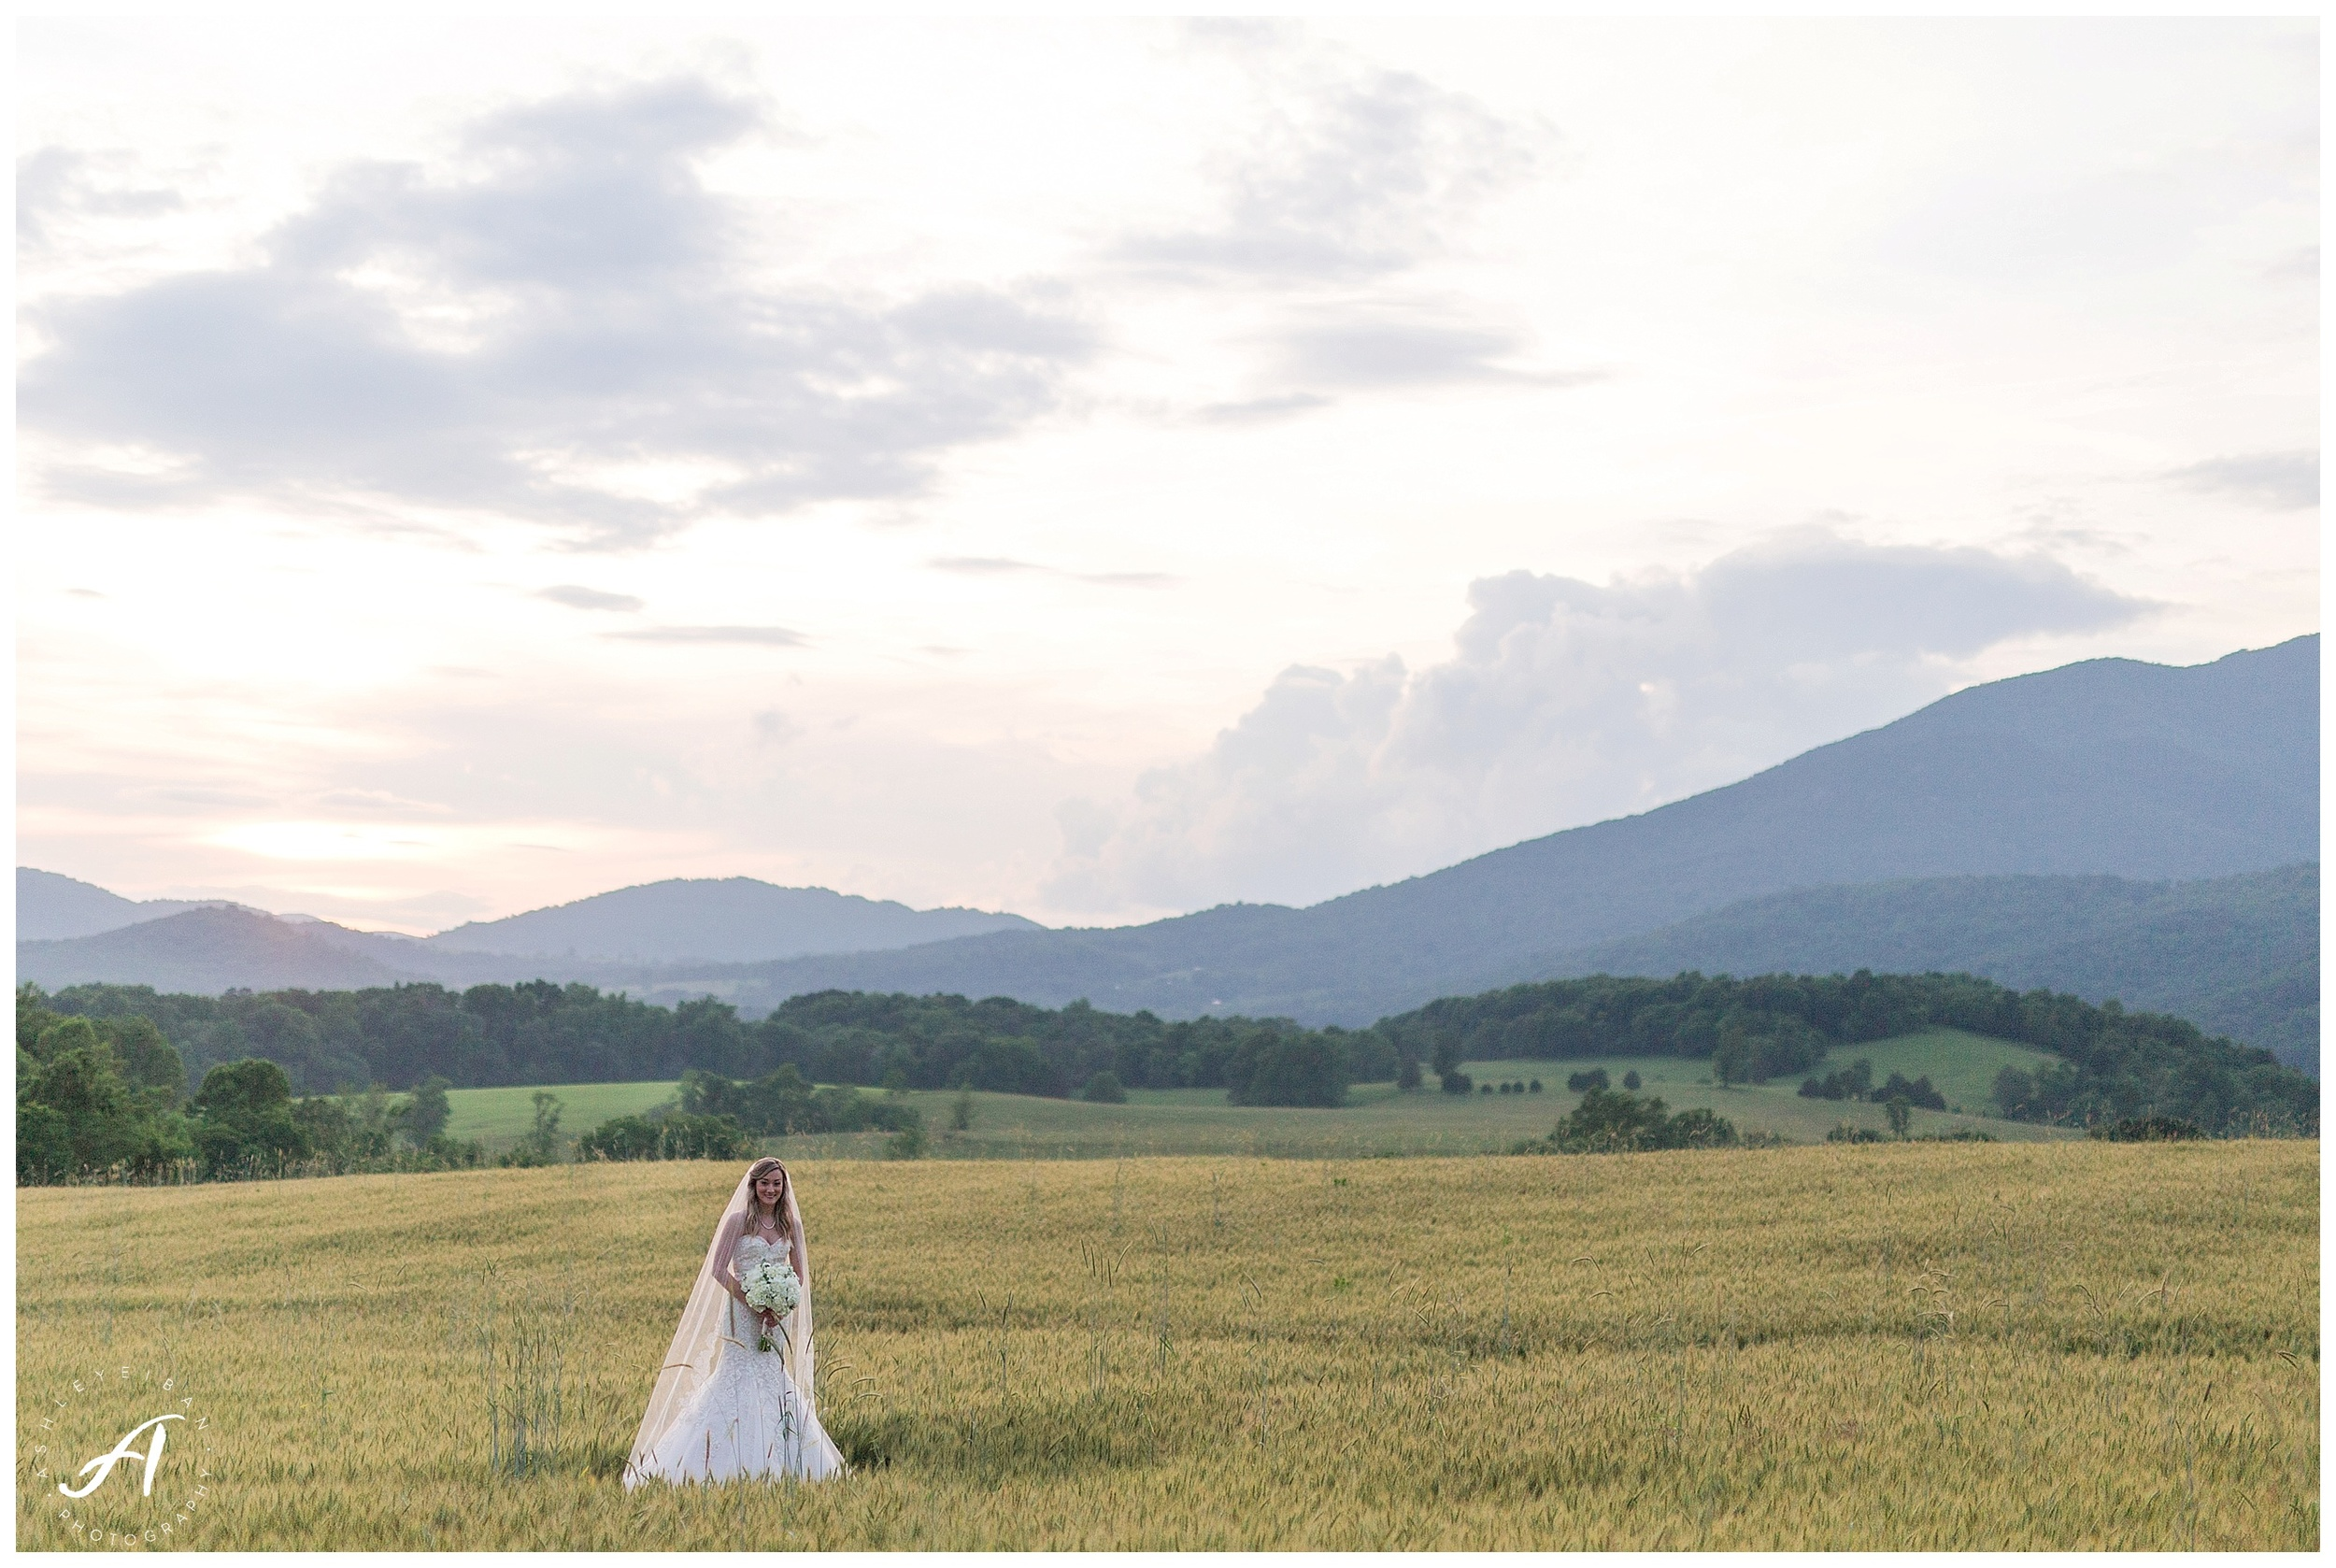 Bedford, Virginia Bridal Portraits || Mountain View Bridal Portraits || Ashley Eiban Photography || www.ashleyeiban.com